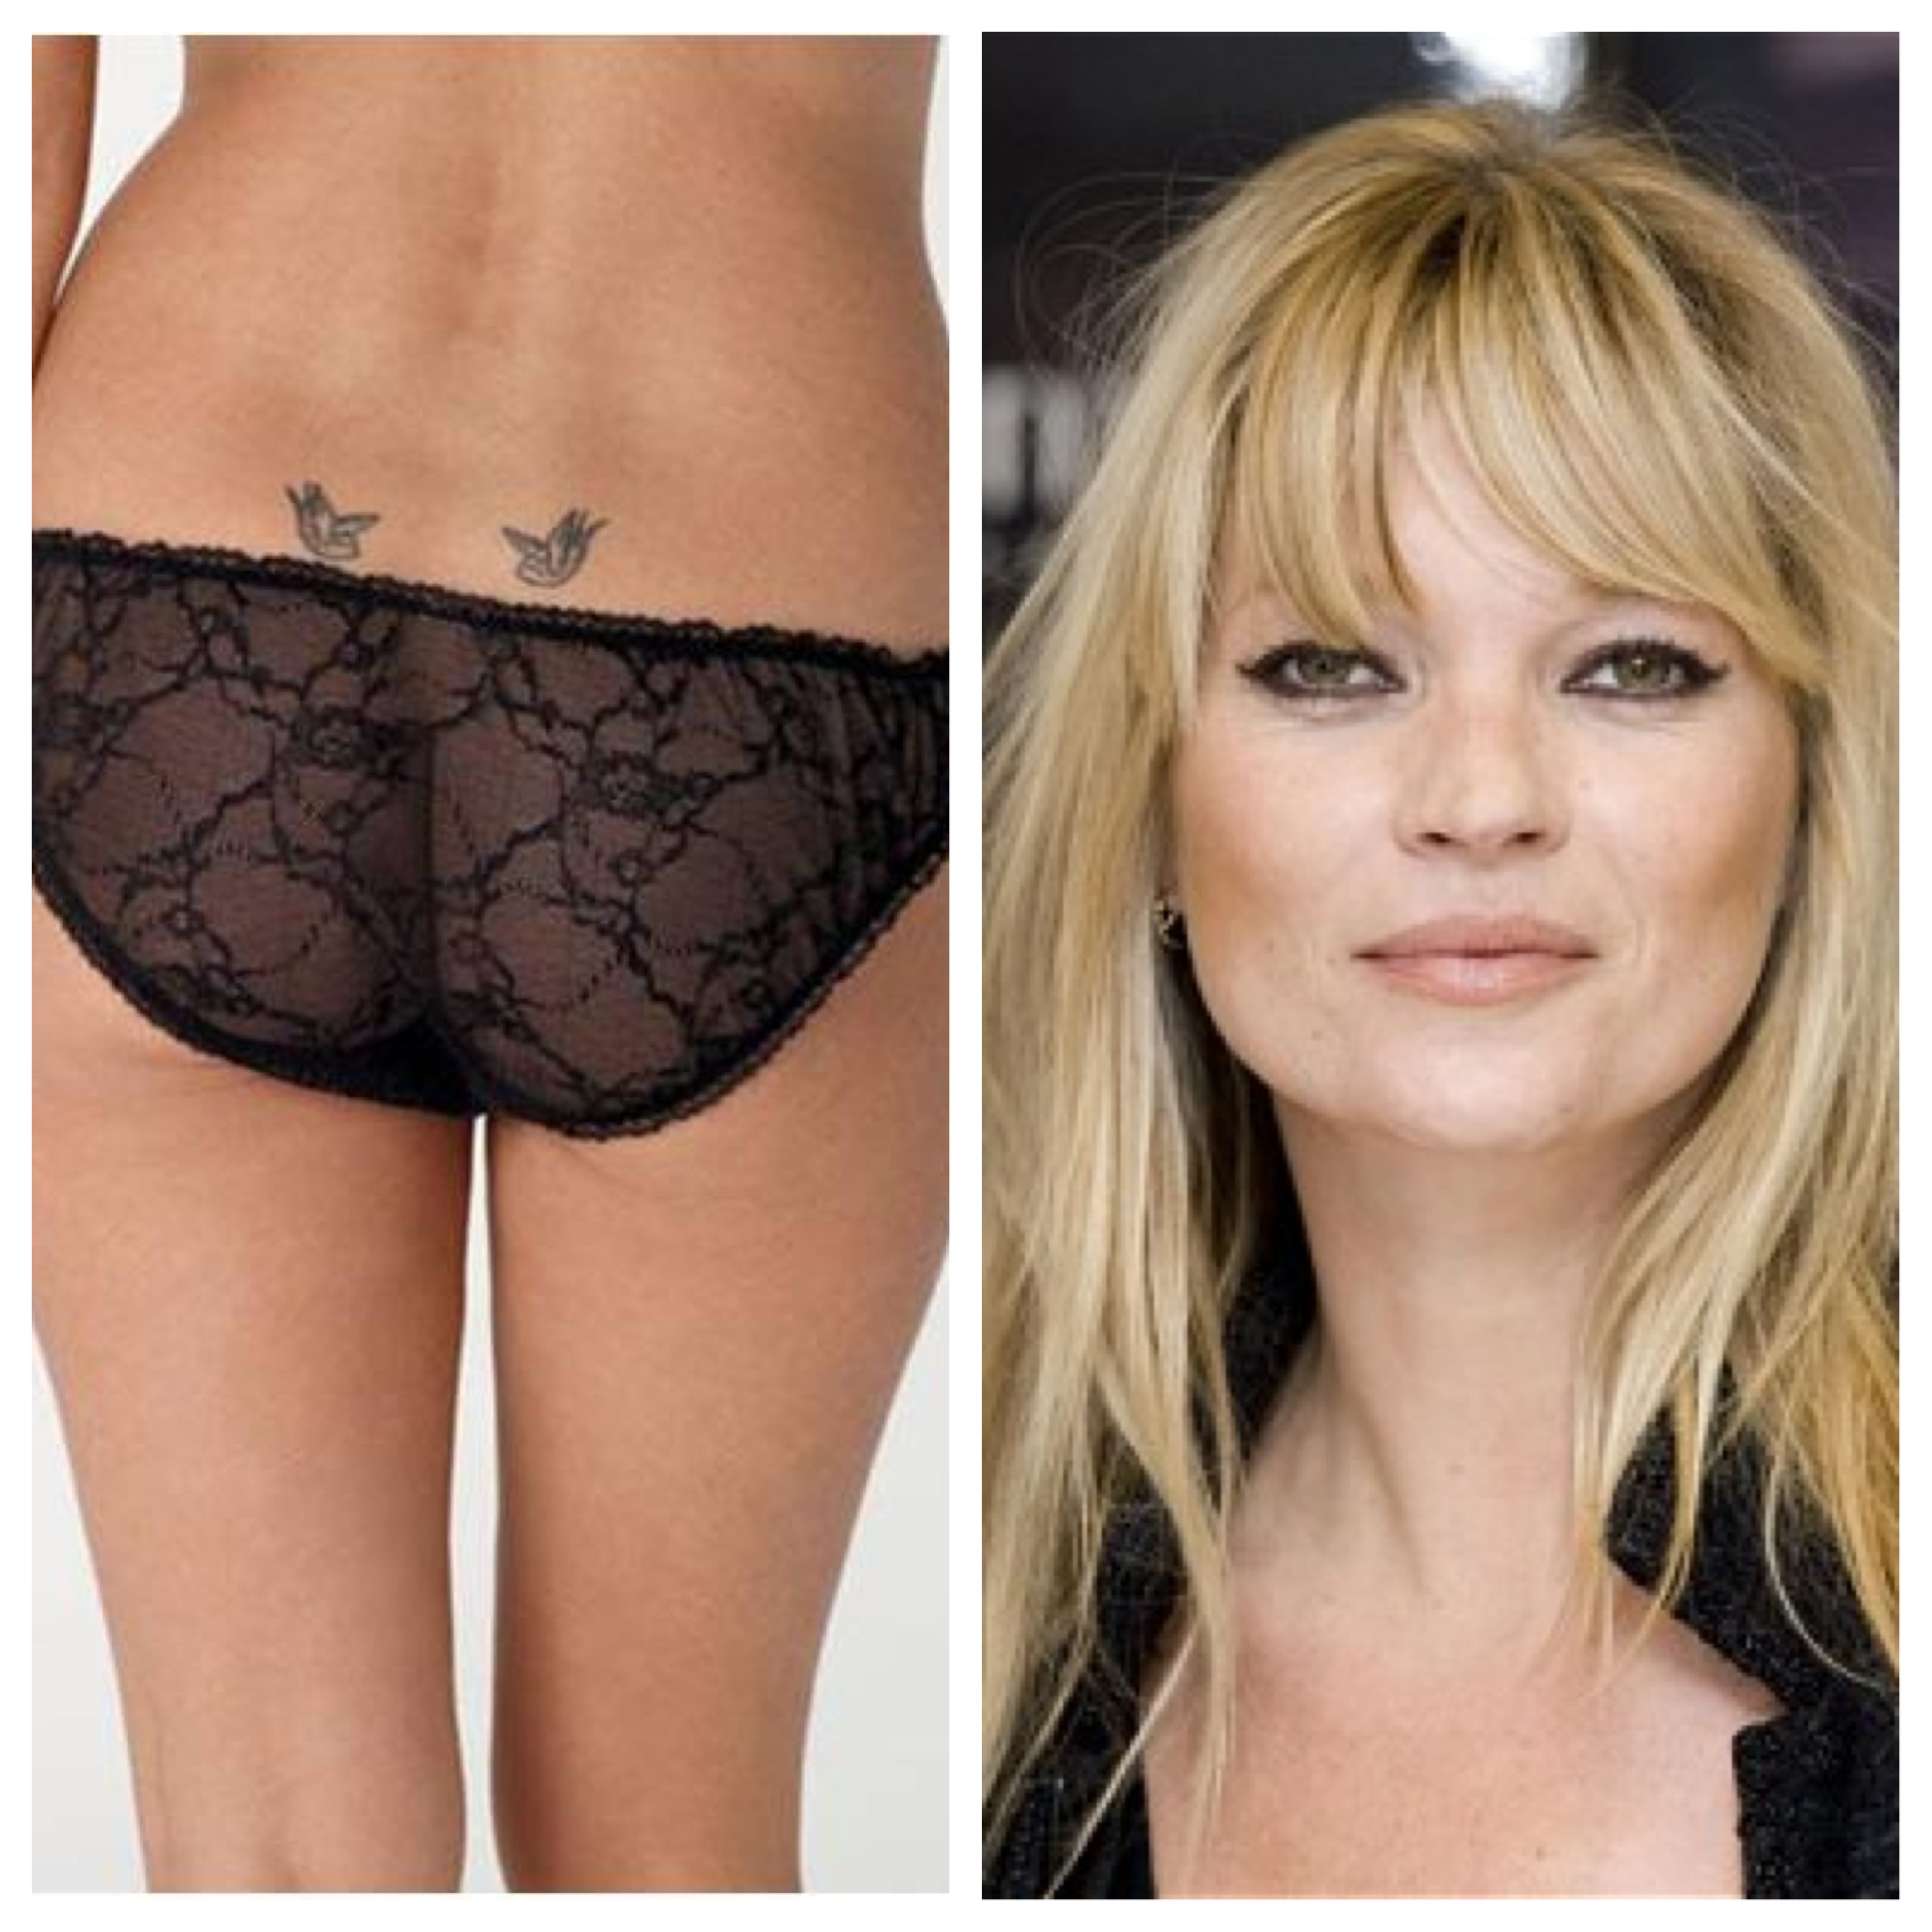 Kate-Moss-tattoos